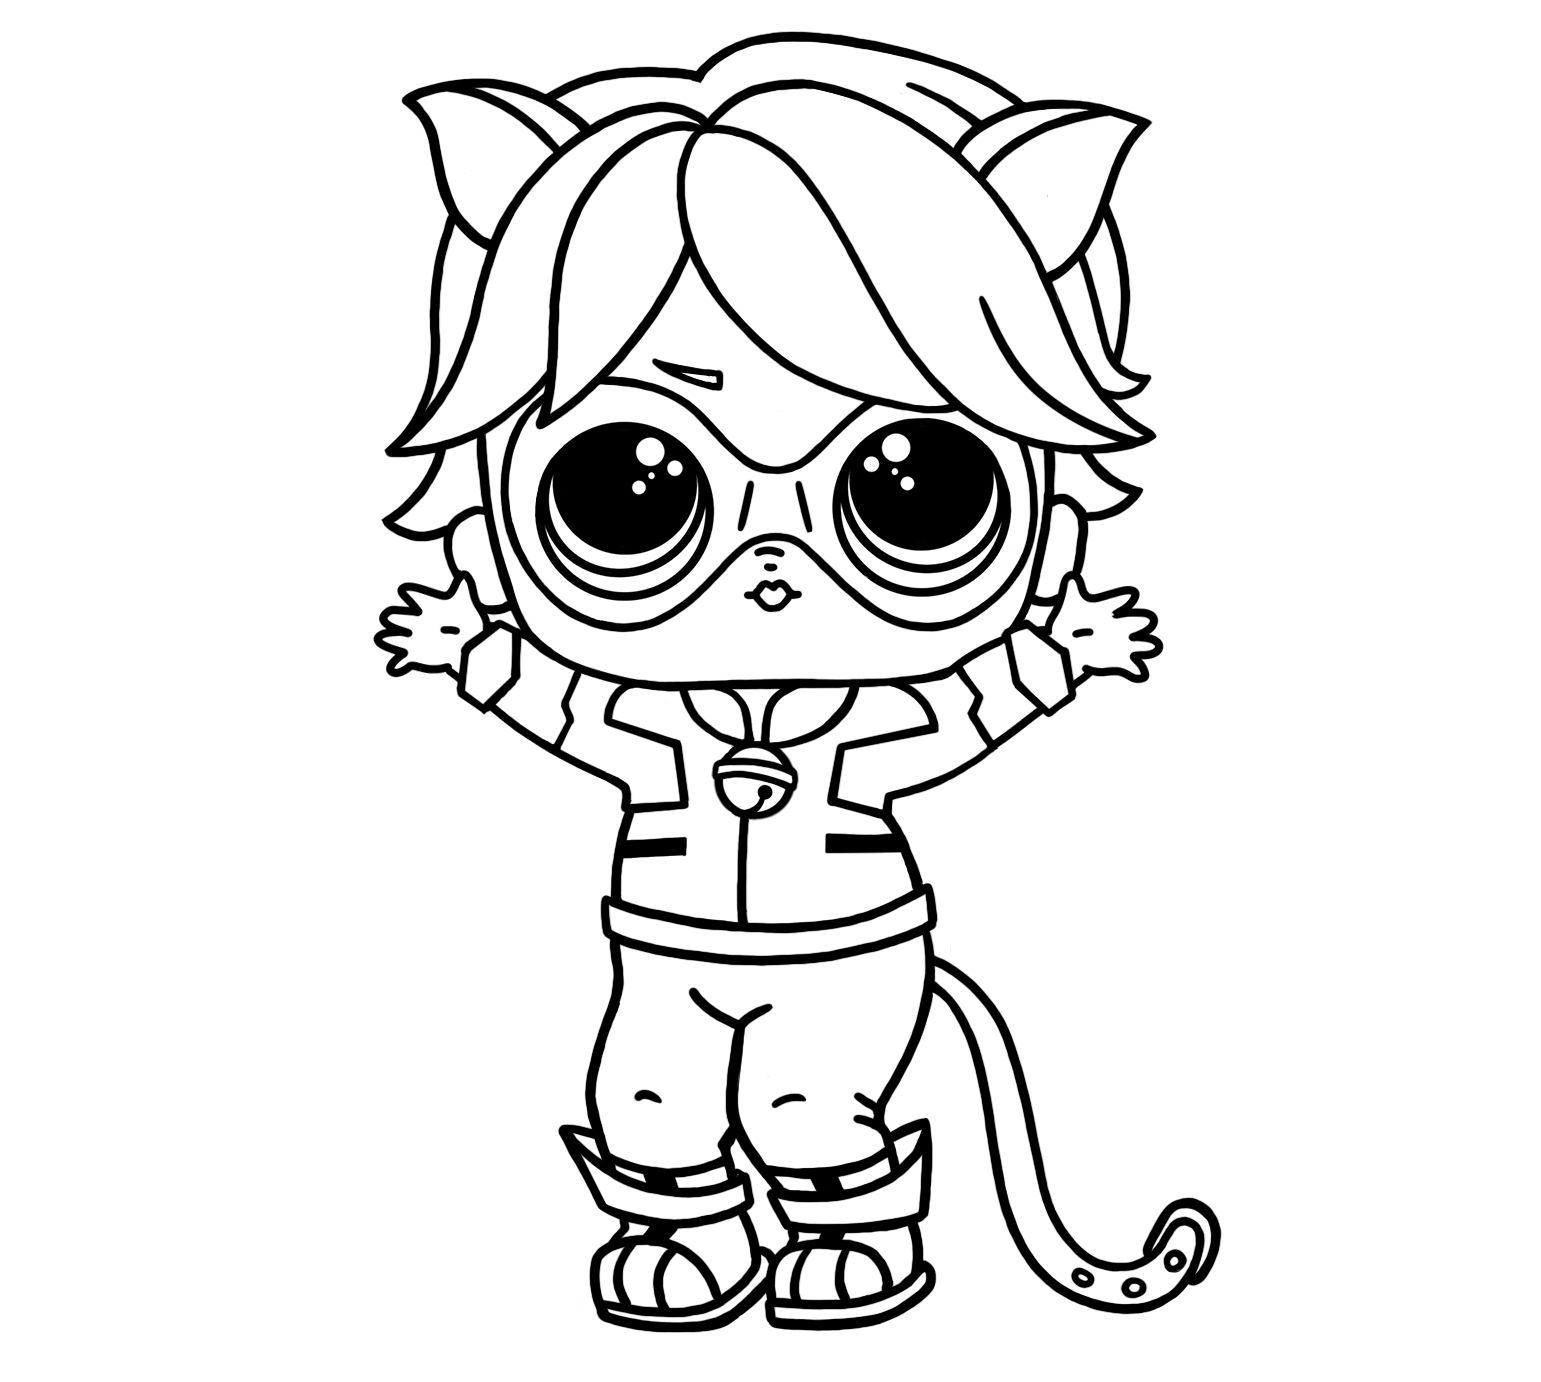 lol doll cat coloring pages baby cat lol doll coloring page cat lol coloring doll pages